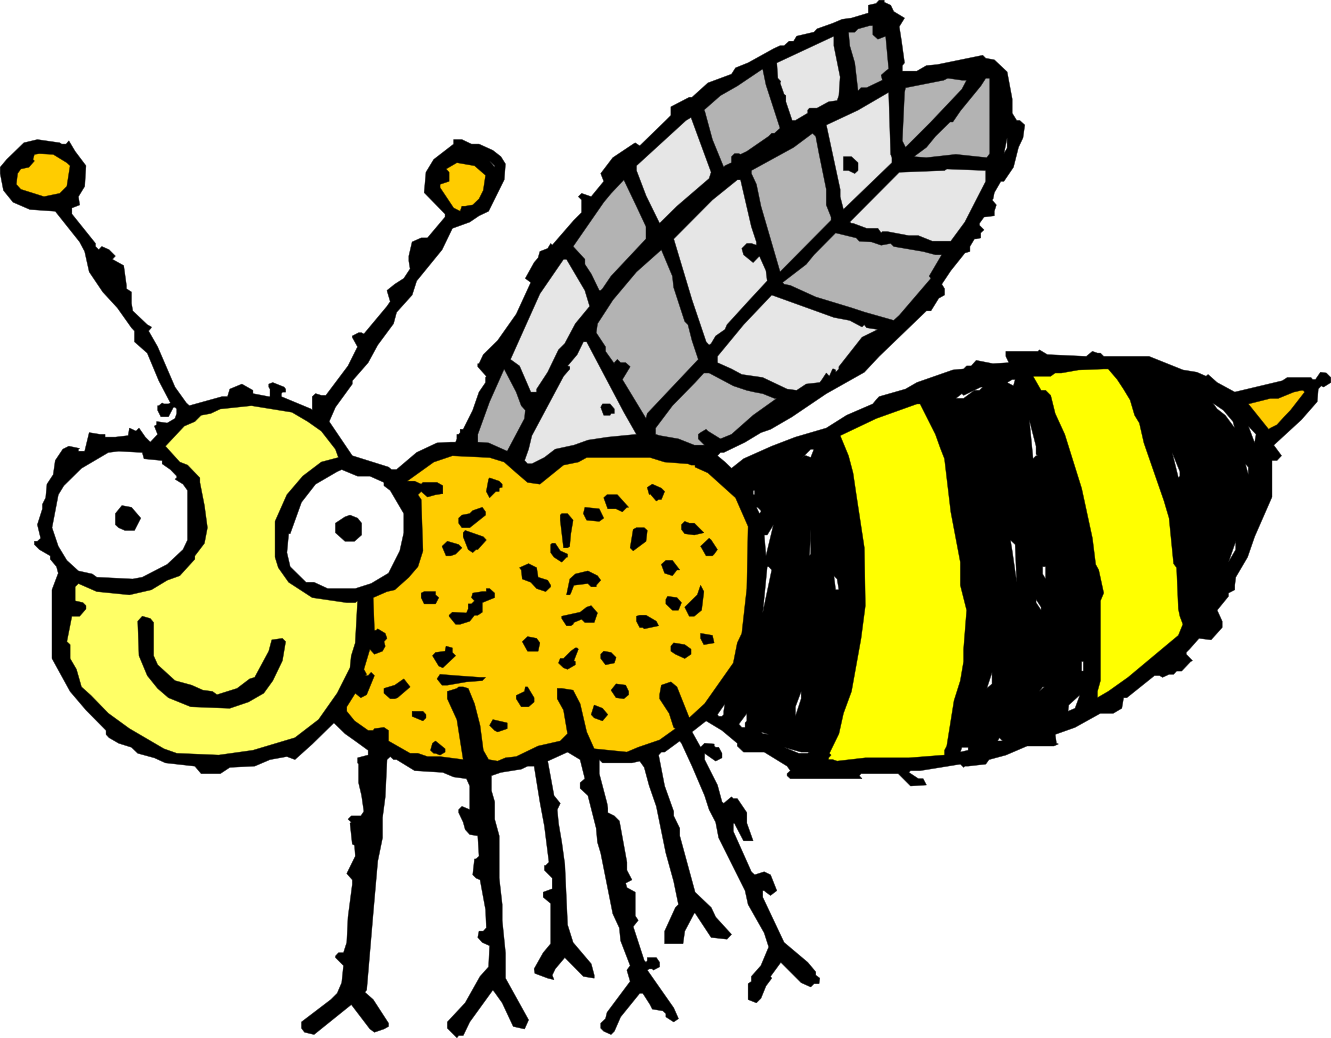 Bee Clipart 4 Free Bee Clip Art Drawings And Colorful